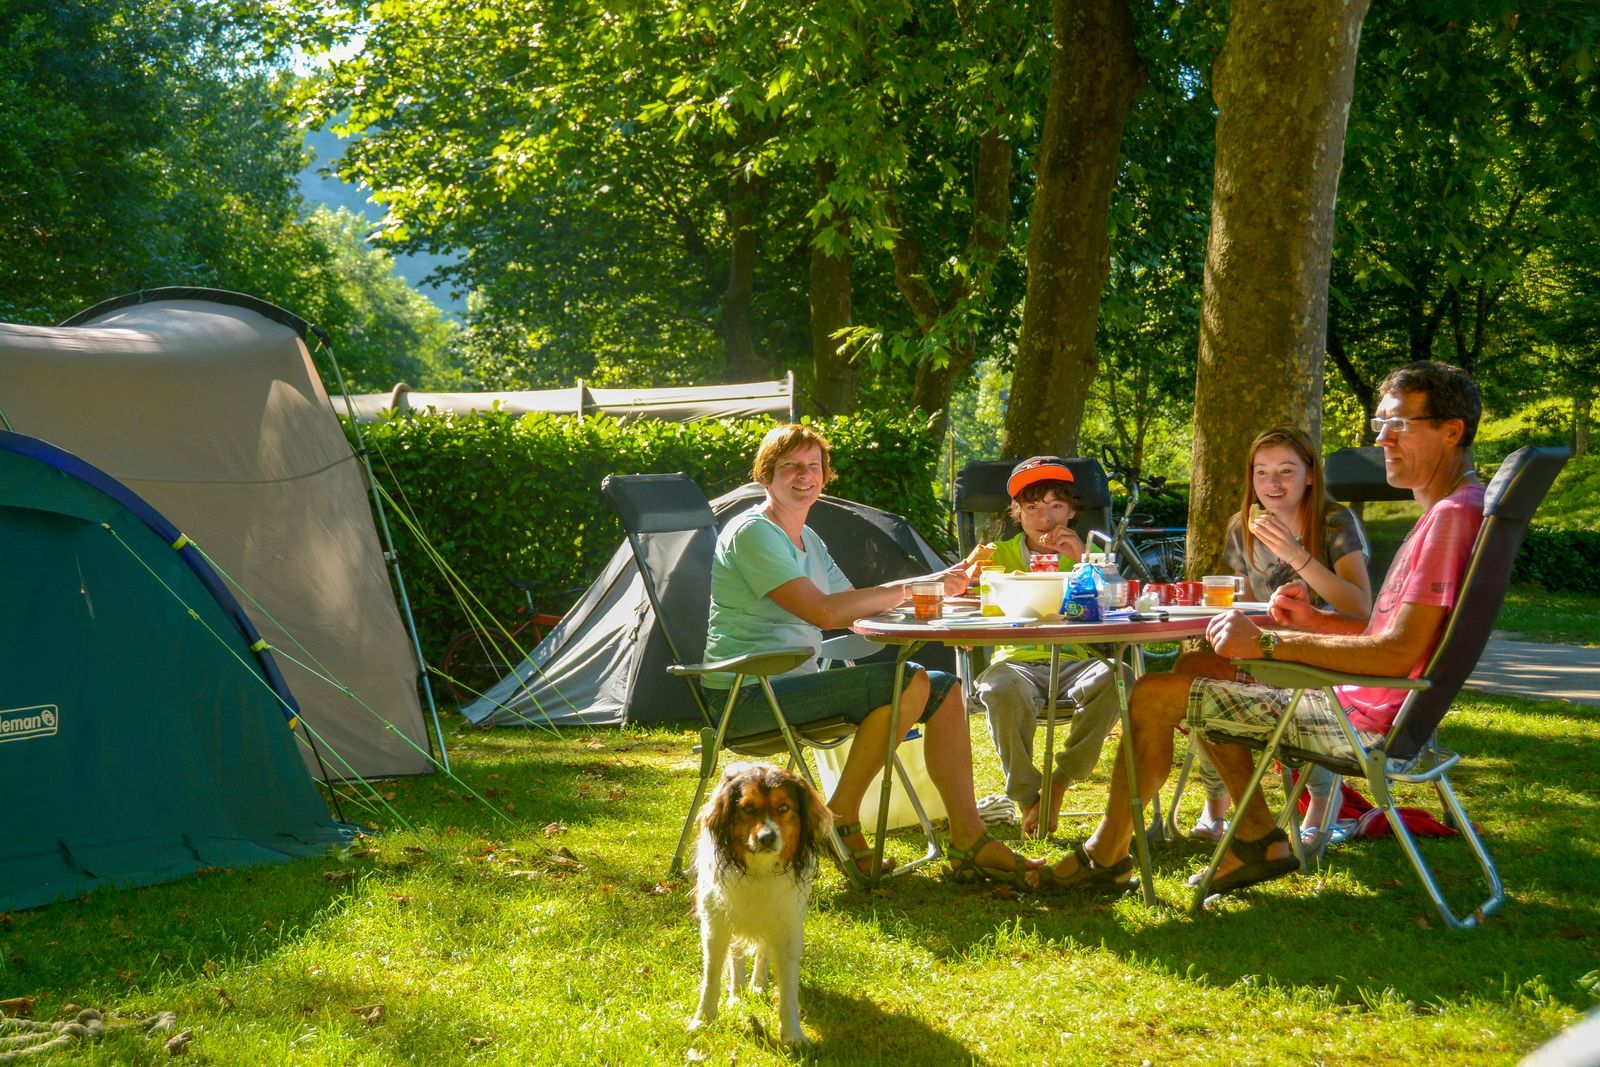 Camping pitches